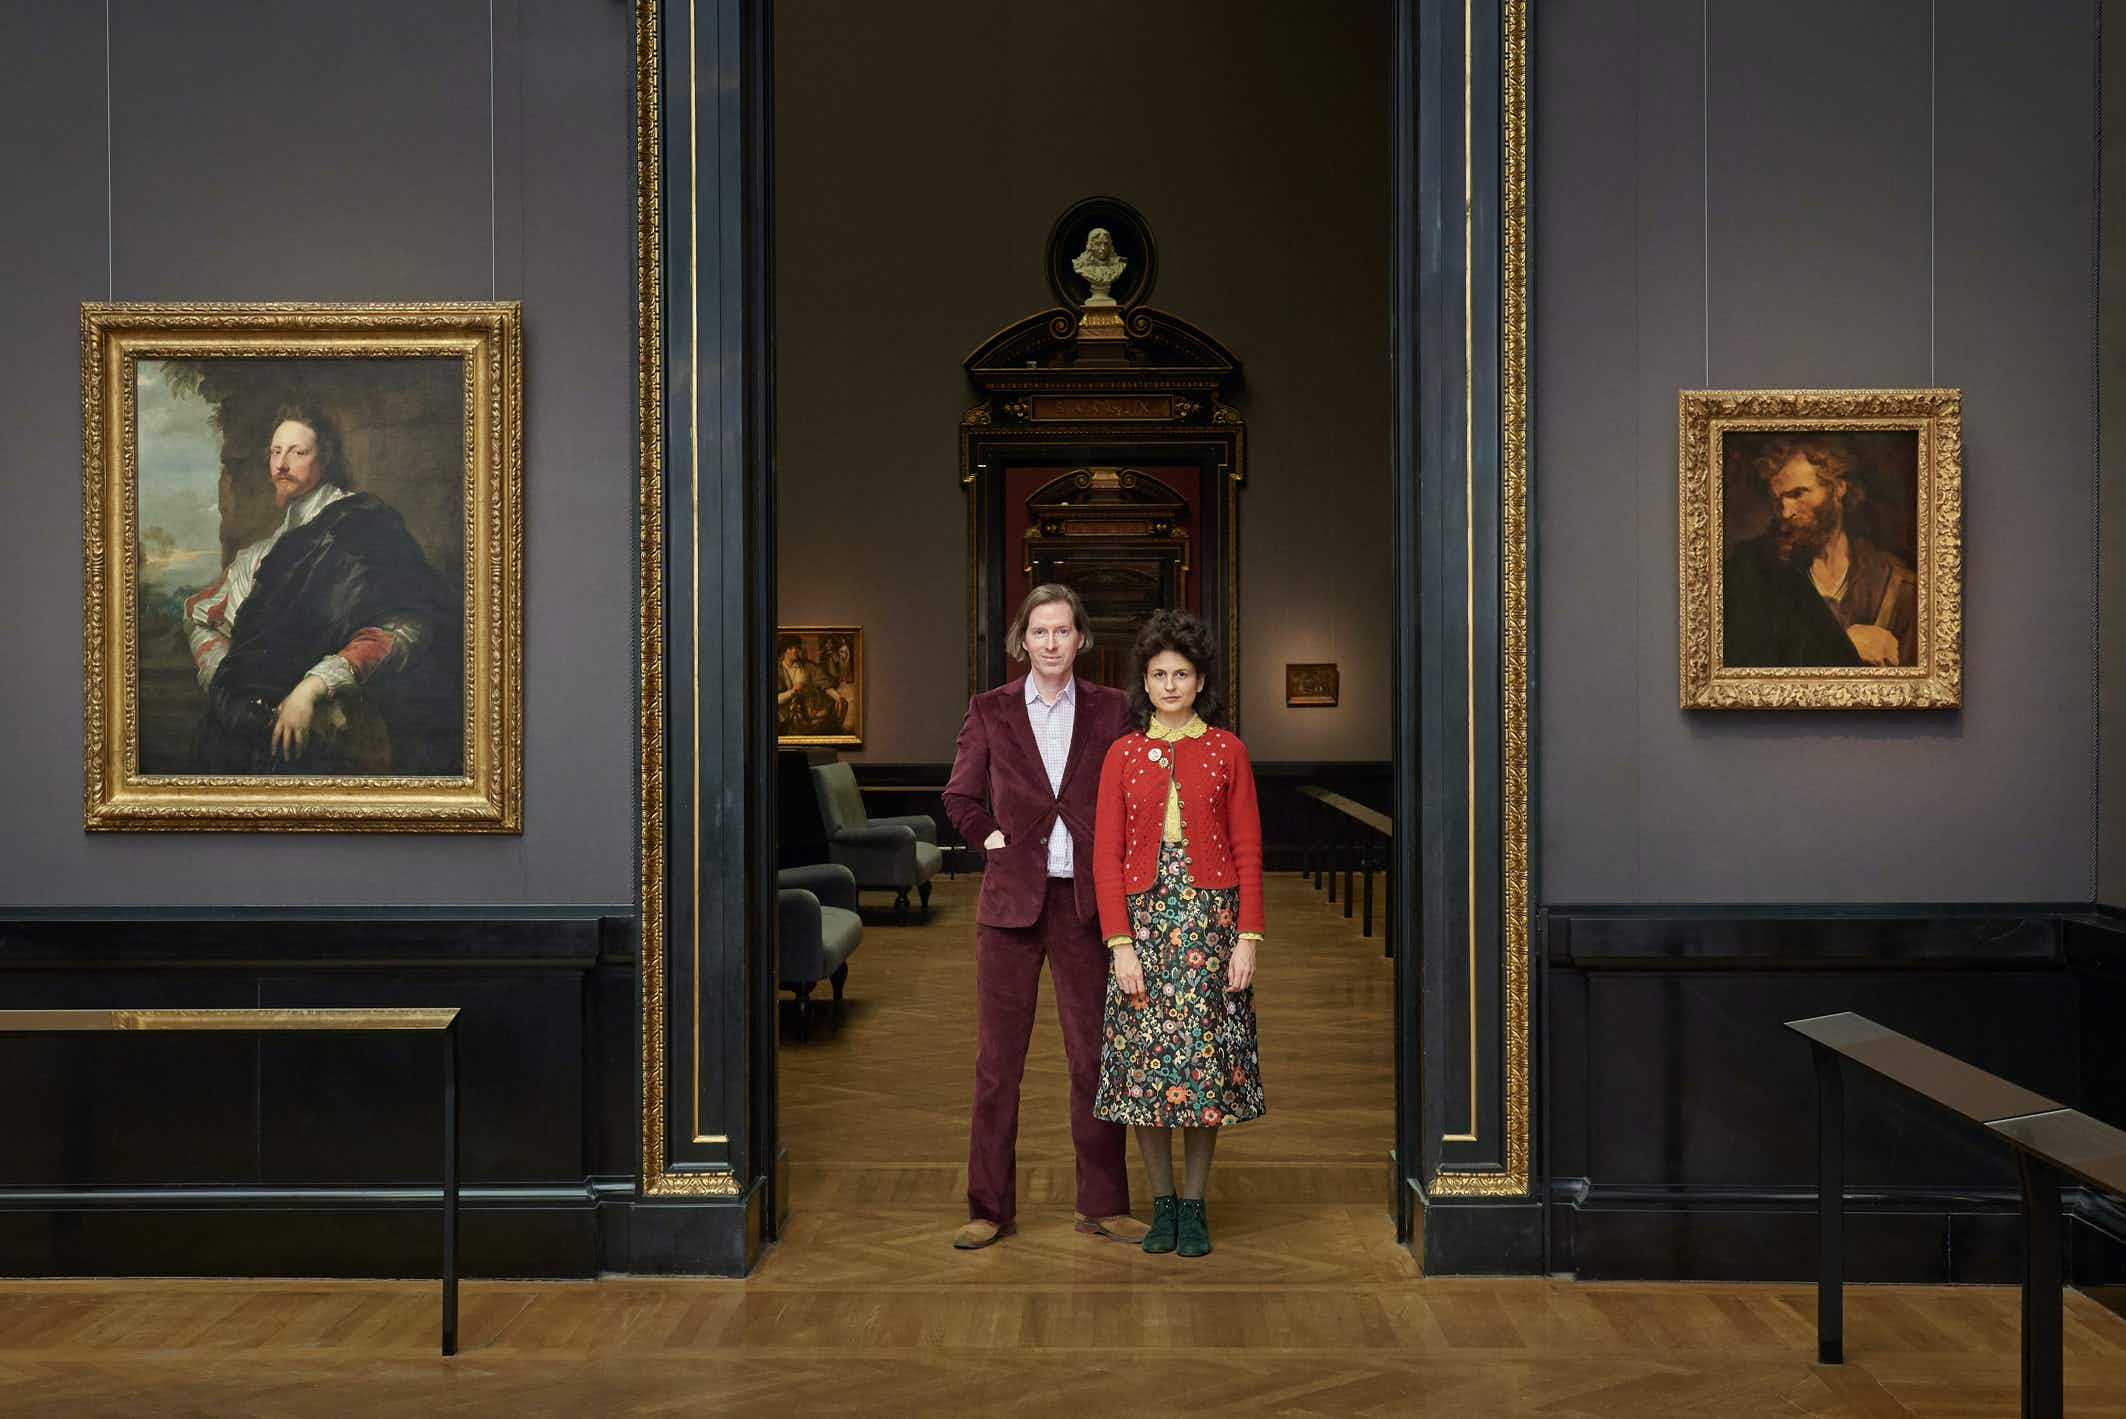 Wes Anderson and Juman Malouf will curate an exhibition in Vienna